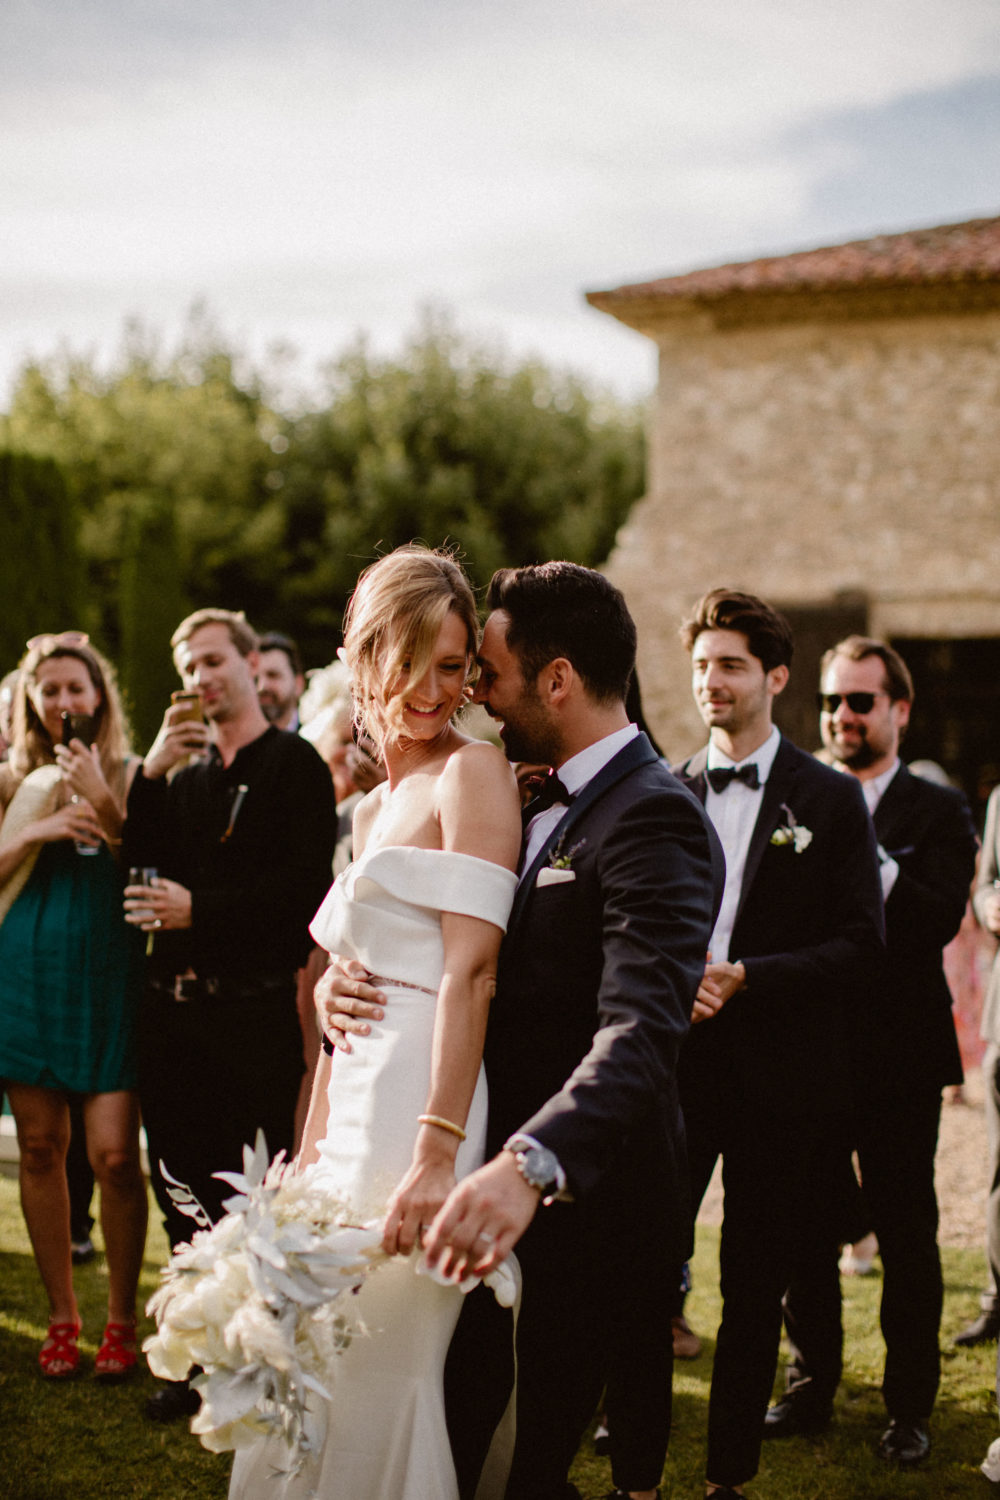 Chateau de Castellaras wedding in Cannes